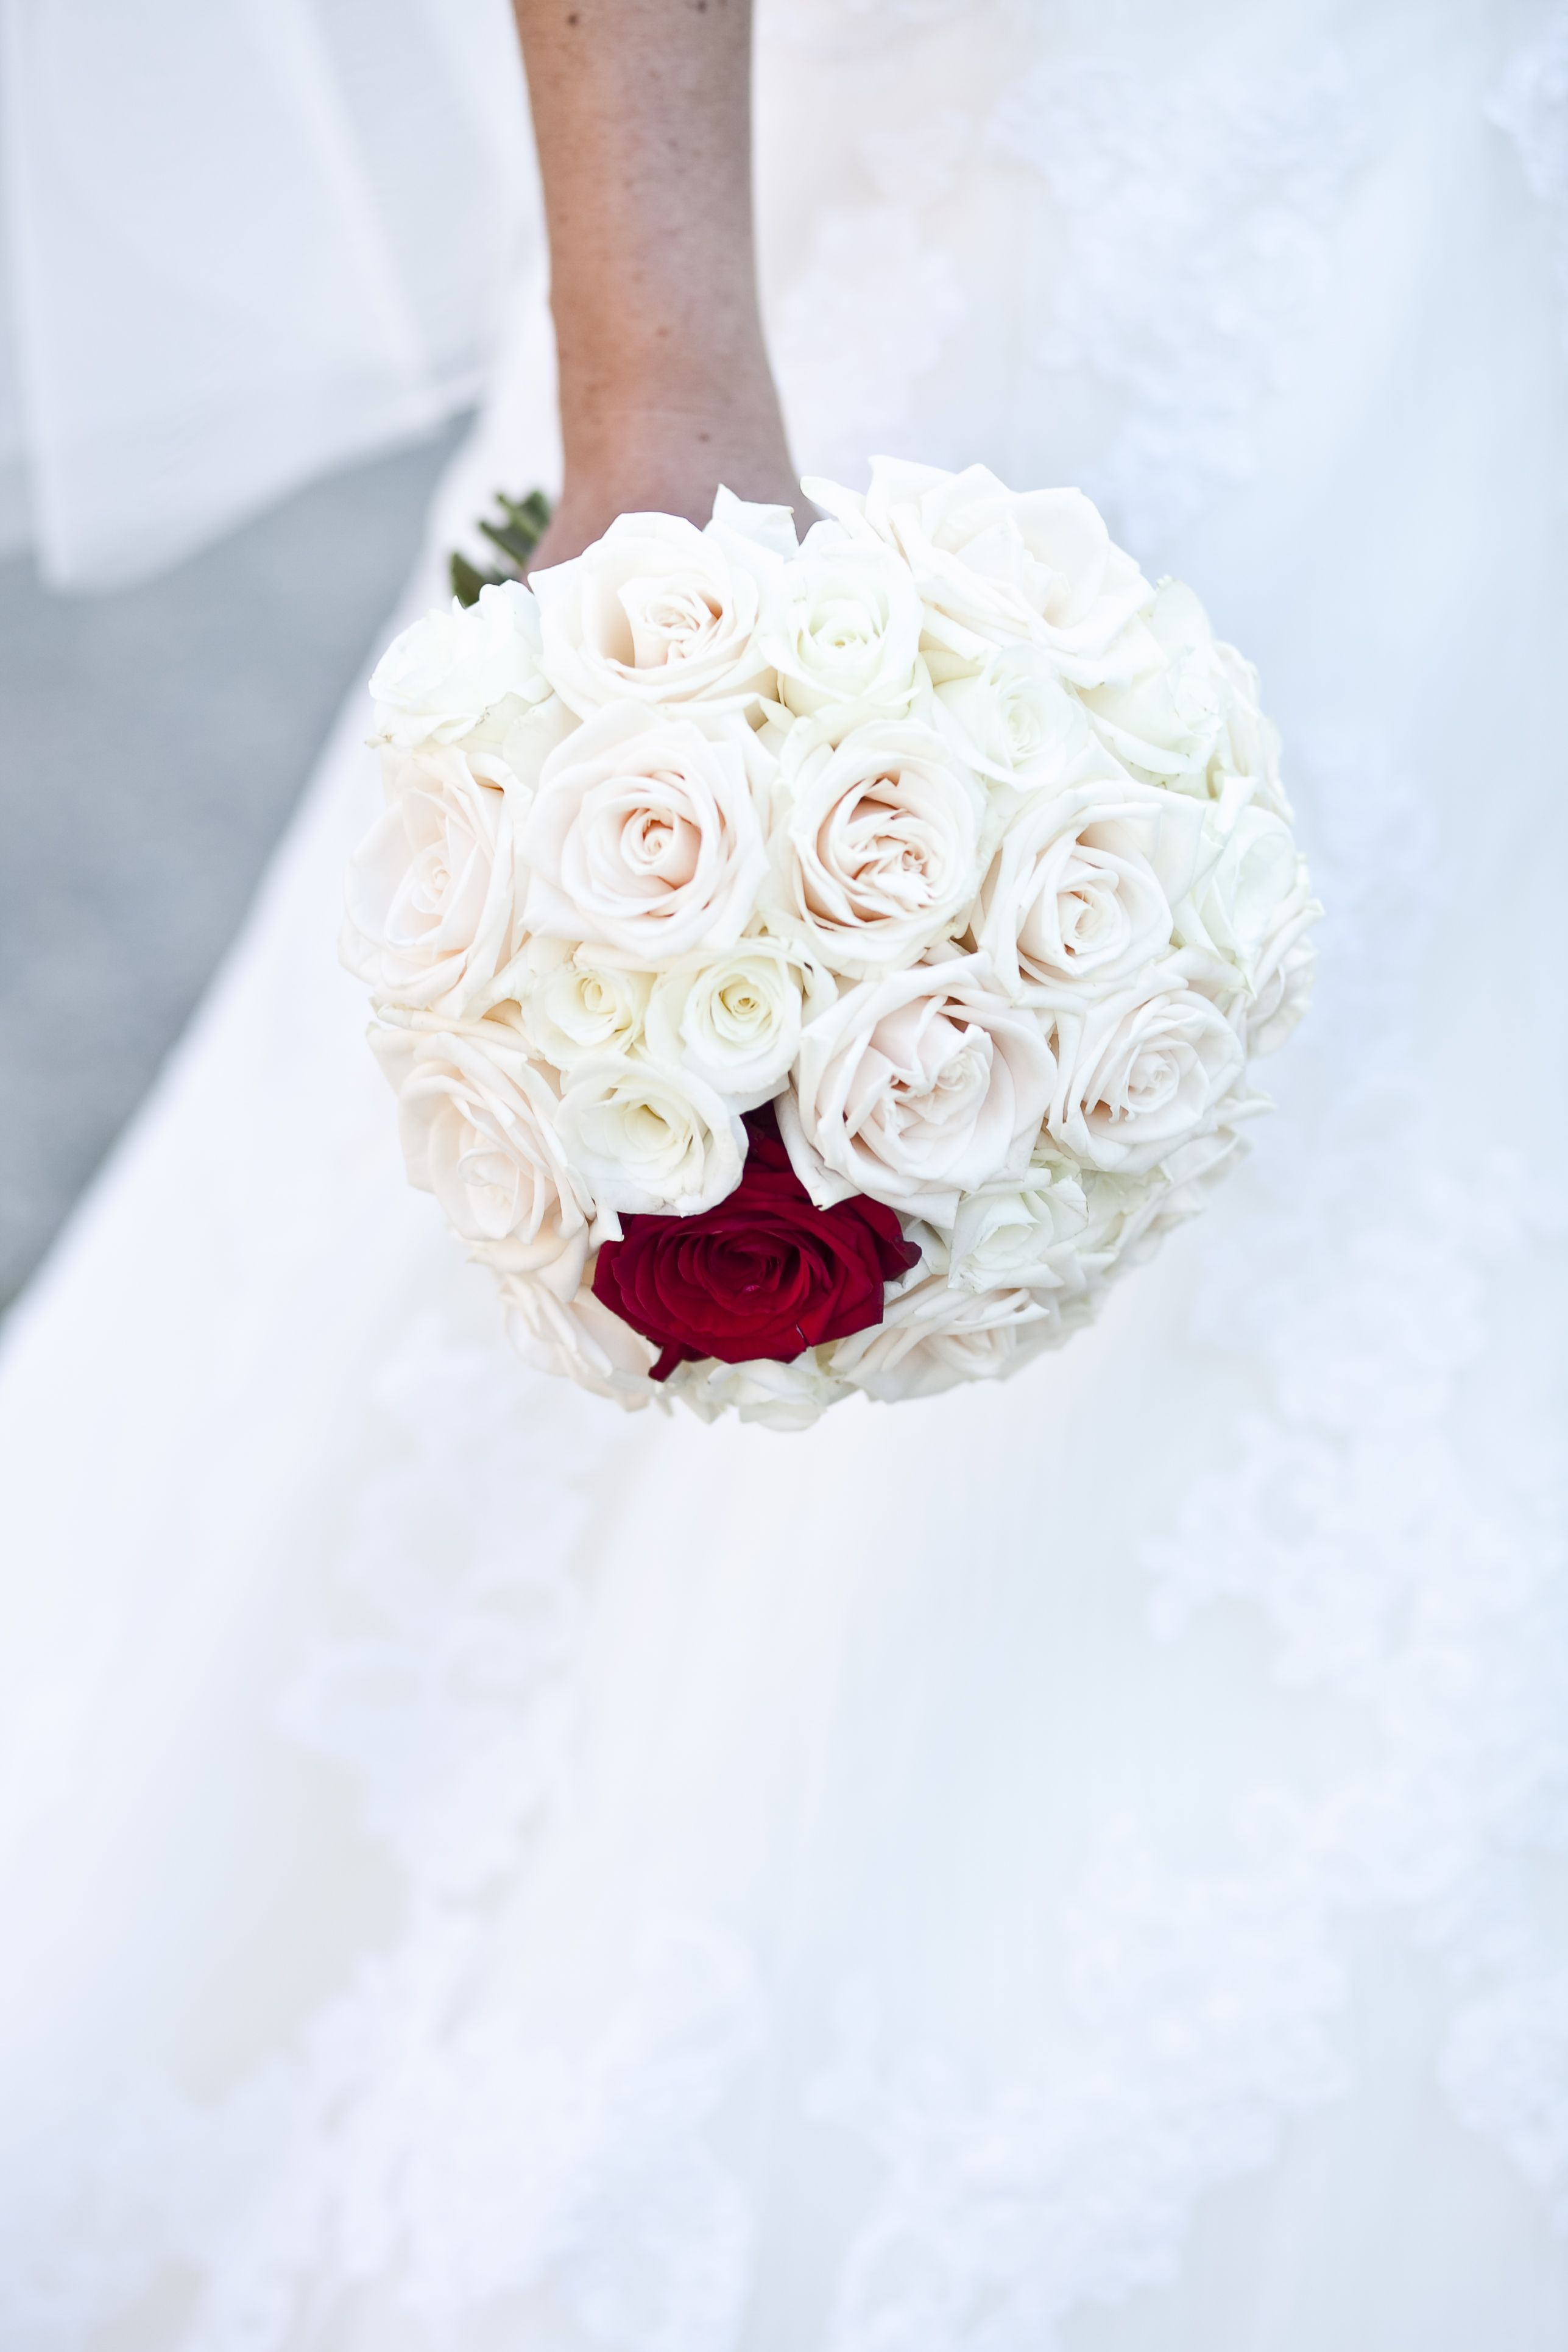 Bouquet With White Roses And One Red Rose White Flower Bouquet White Wedding Bouquets Red Rose Bouquet [ 3861 x 2574 Pixel ]